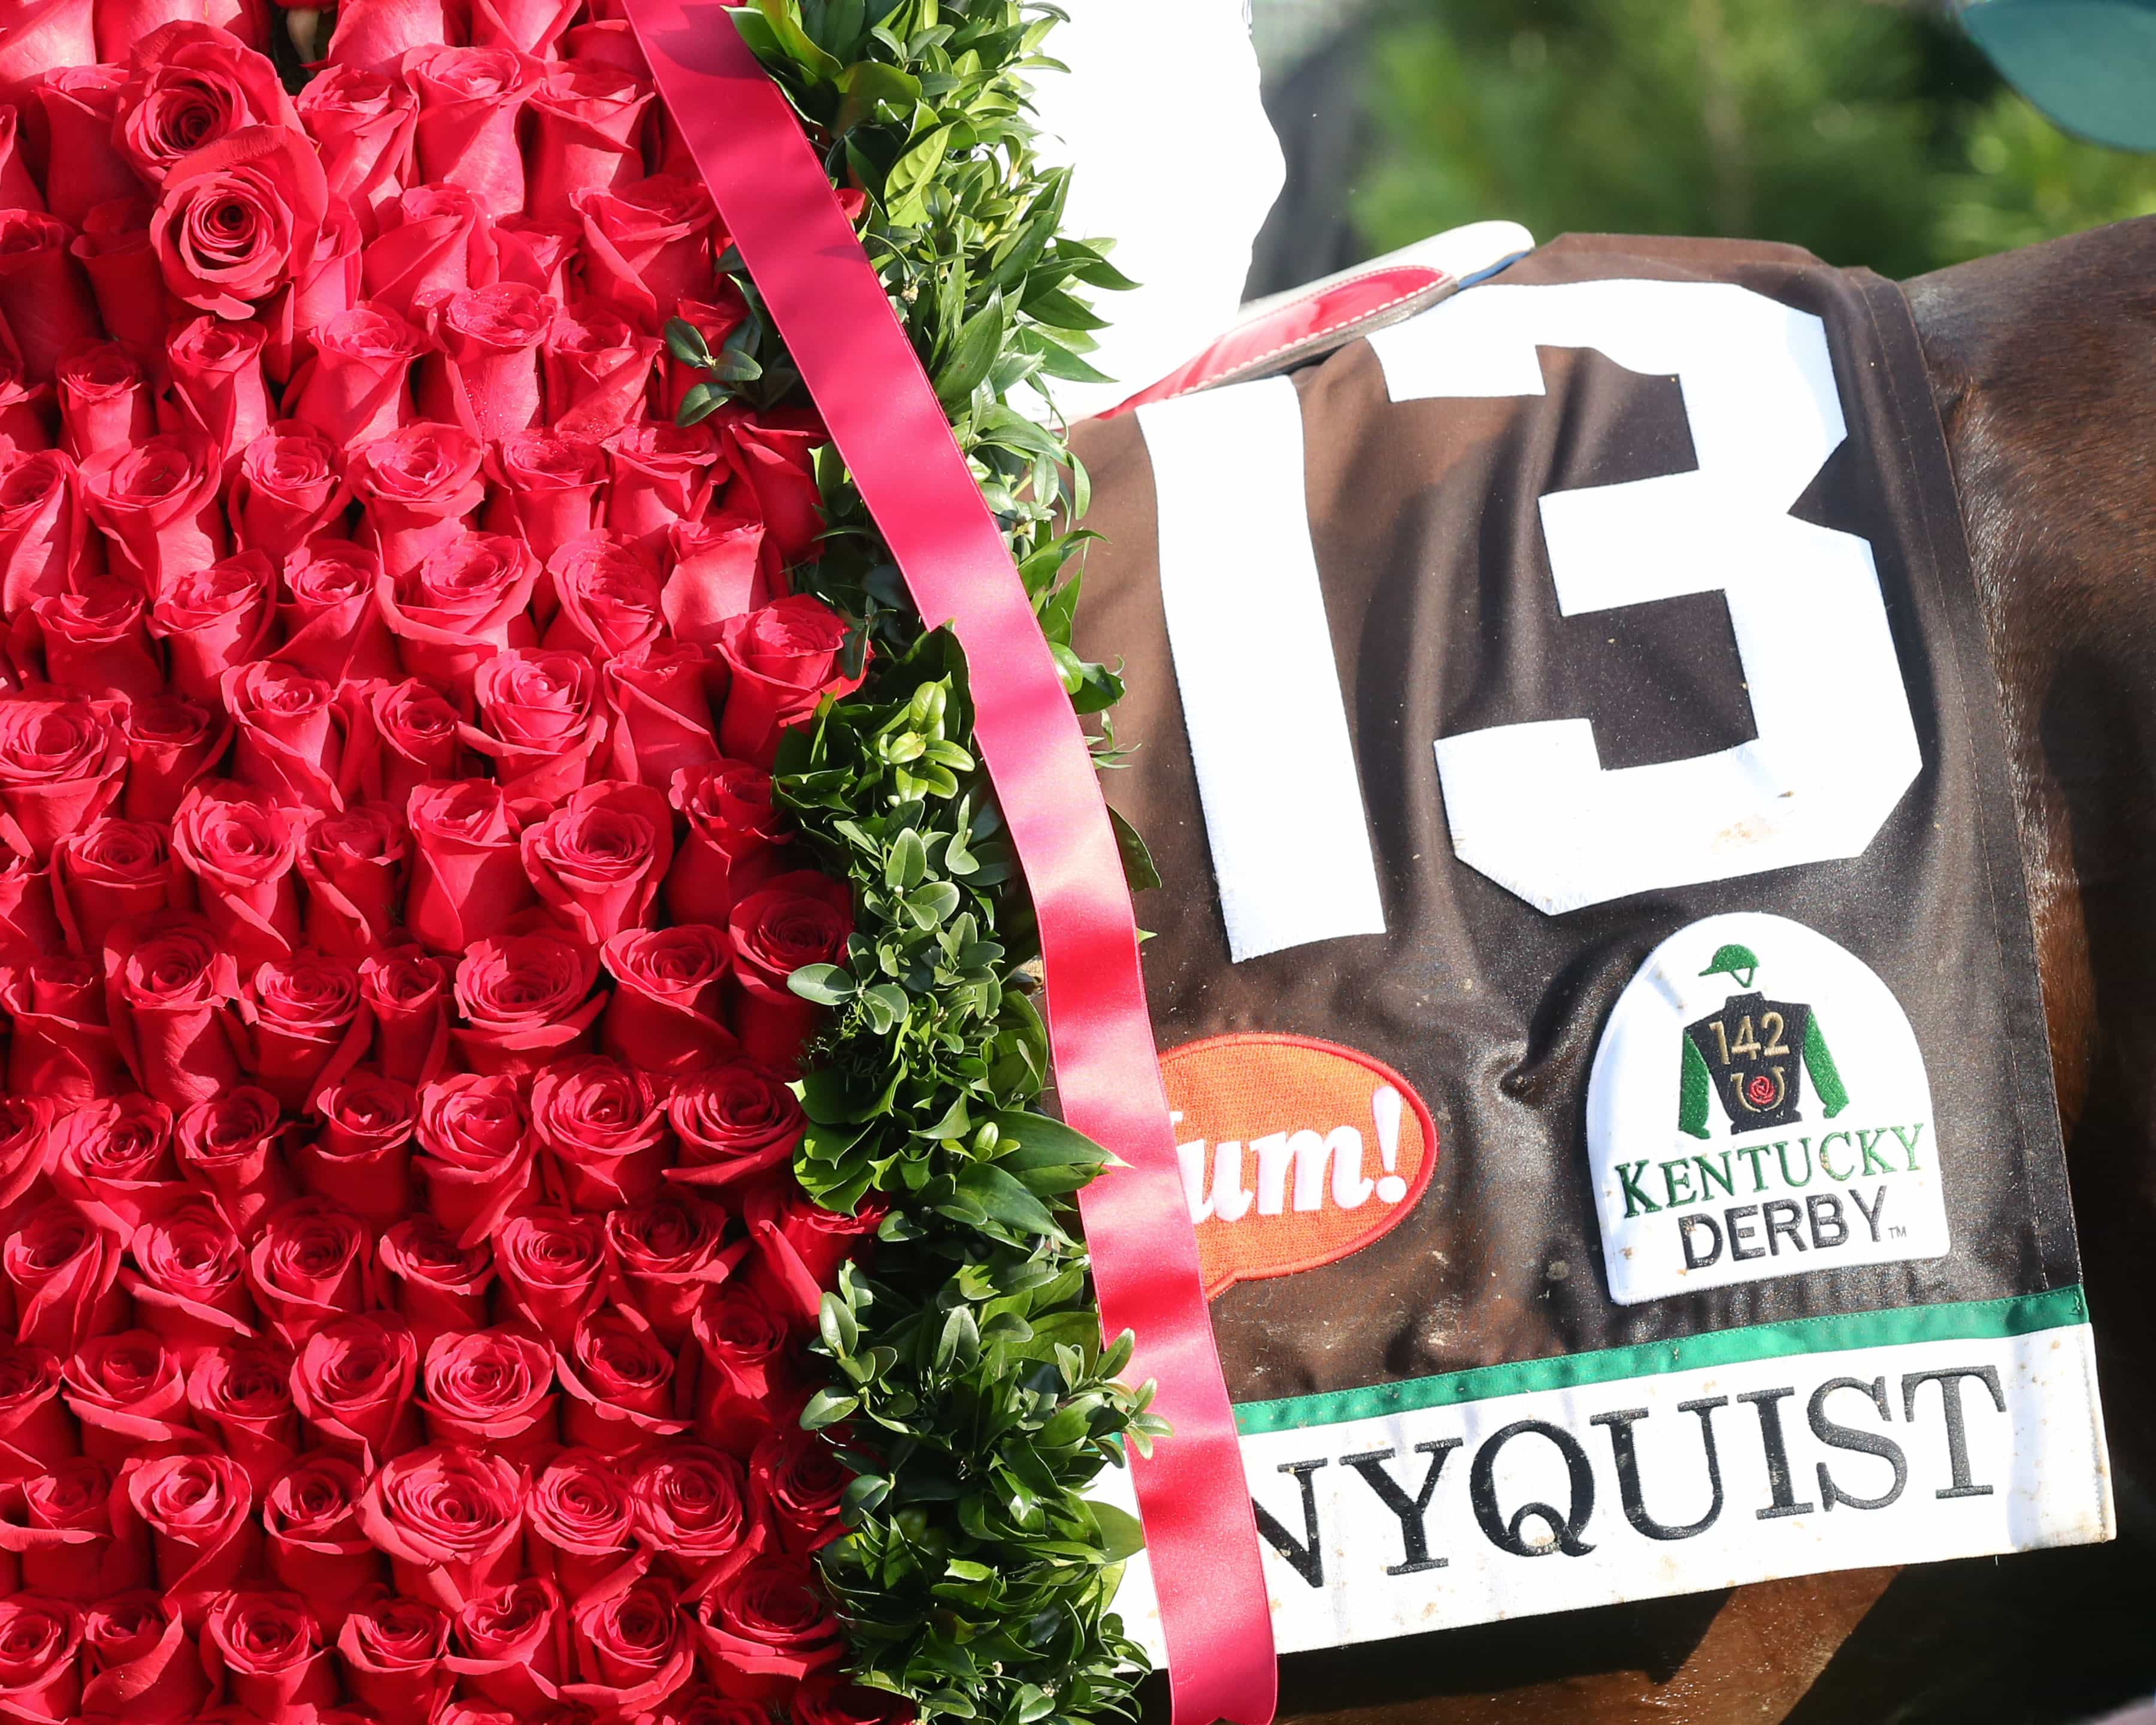 NYQUIST - The Kentucky Derby Gr I - 142nd Running - 05-07-16 - R12 - CD - Roses 2 - Coady Photography